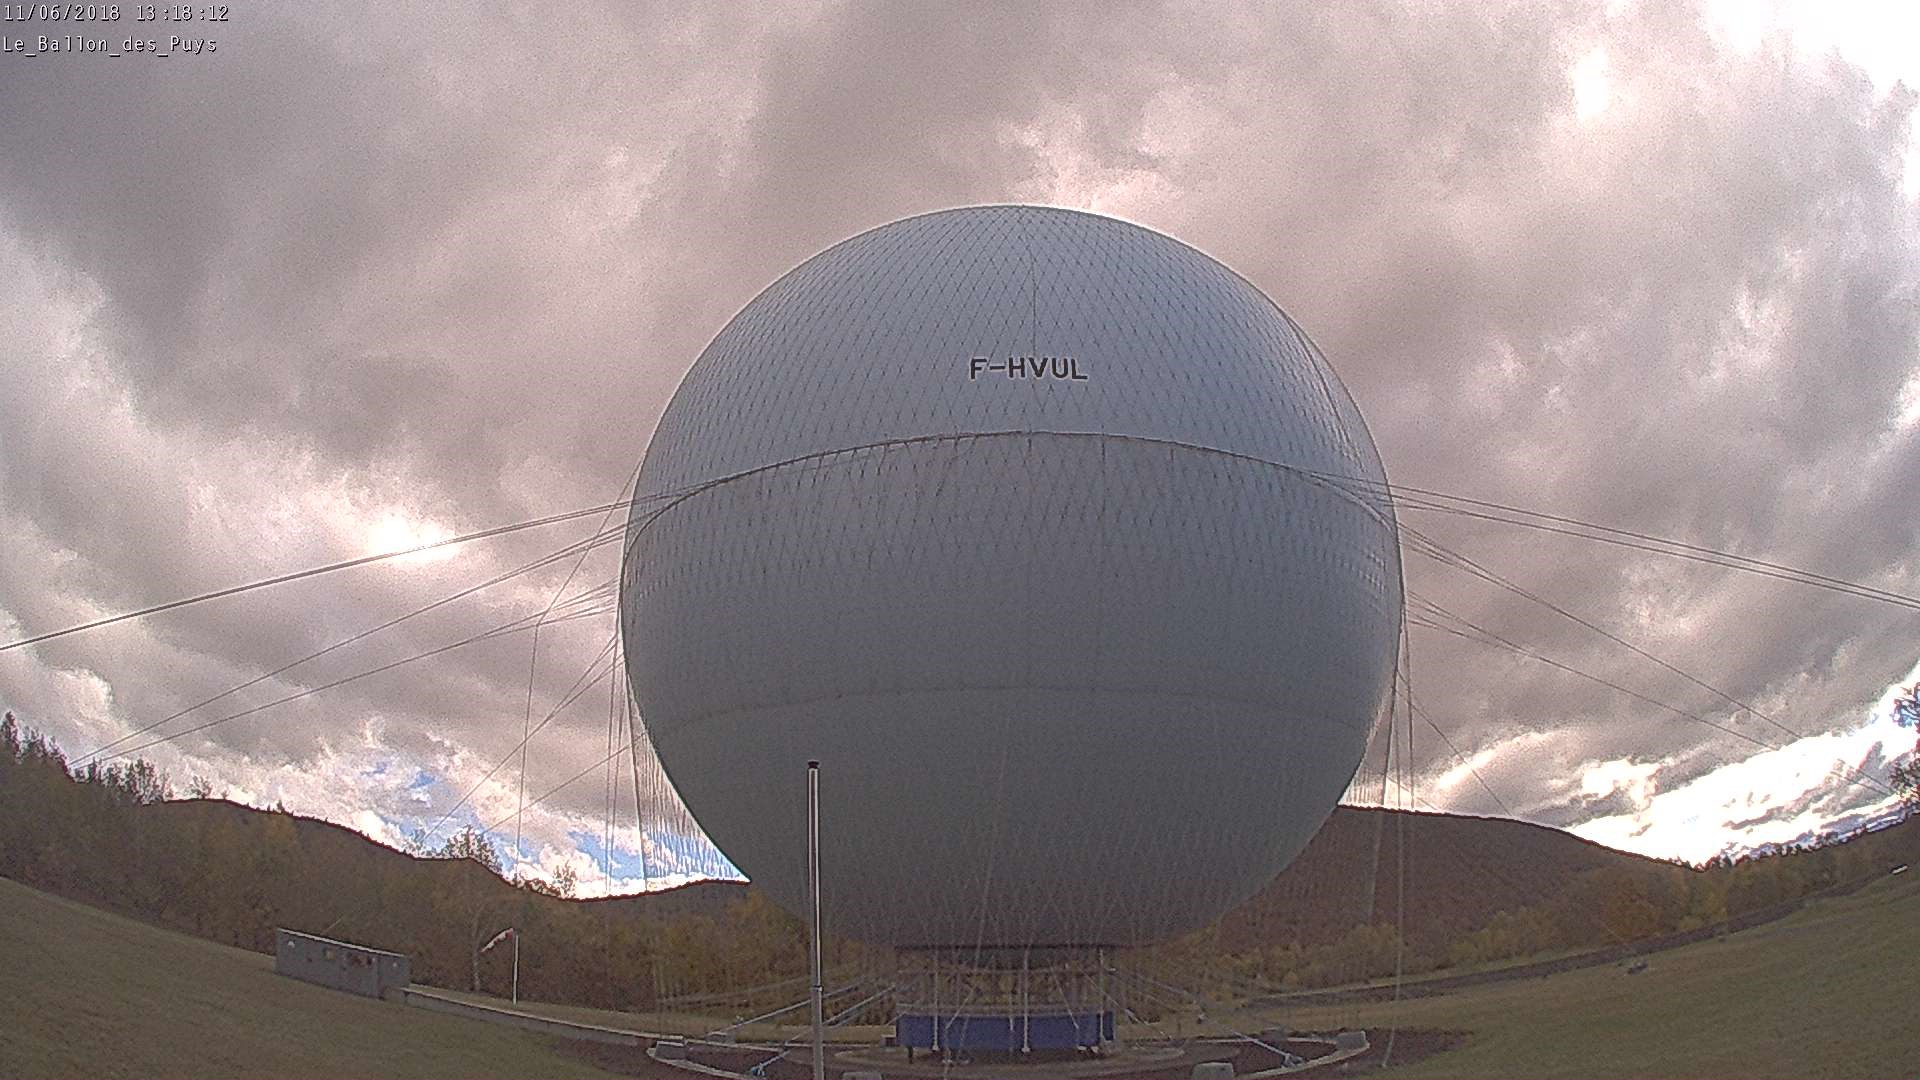 Webcam du ballon des Puys